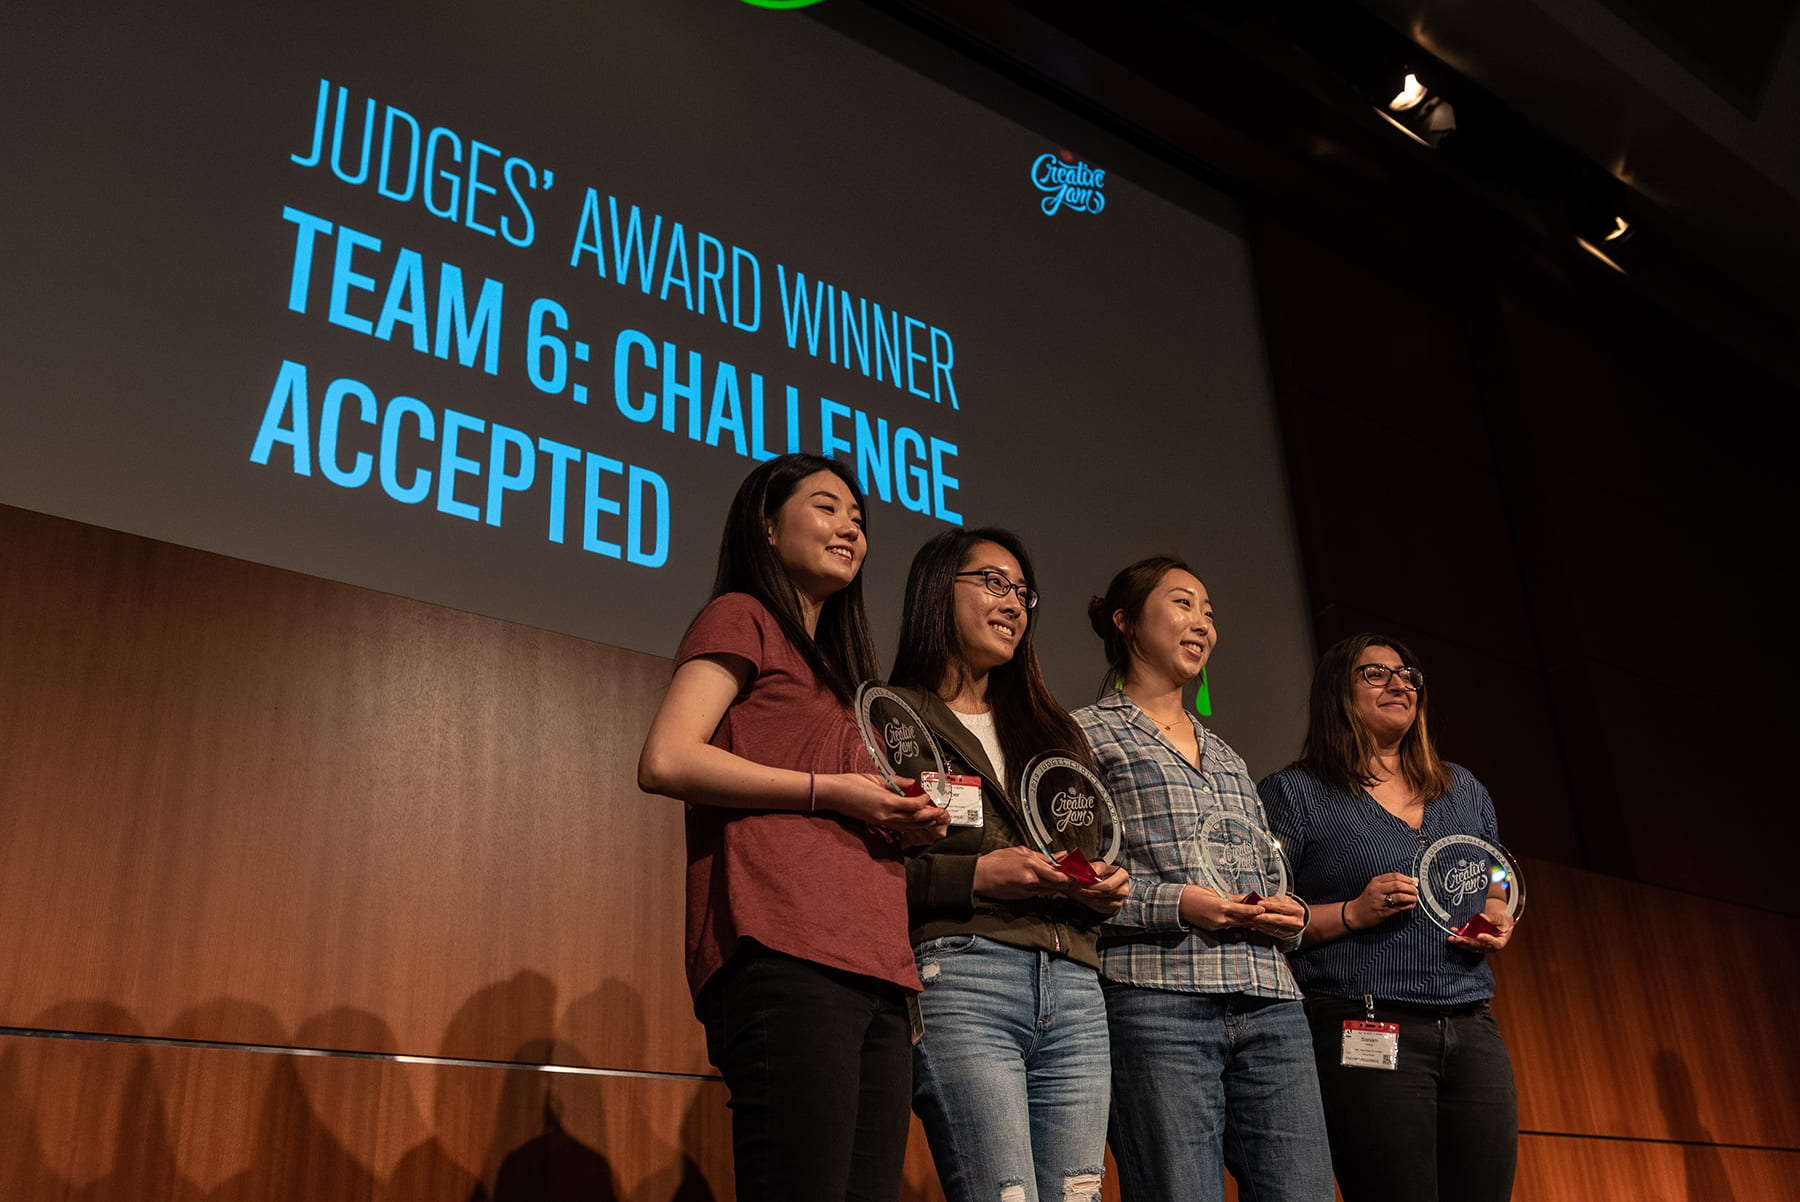 A team of SJSU students received the Judges' Award at the 2019 Adobe Creative Jam April 18 for designing a prototype of an app to help people digitally detox. Photo by Nathaniel Agot